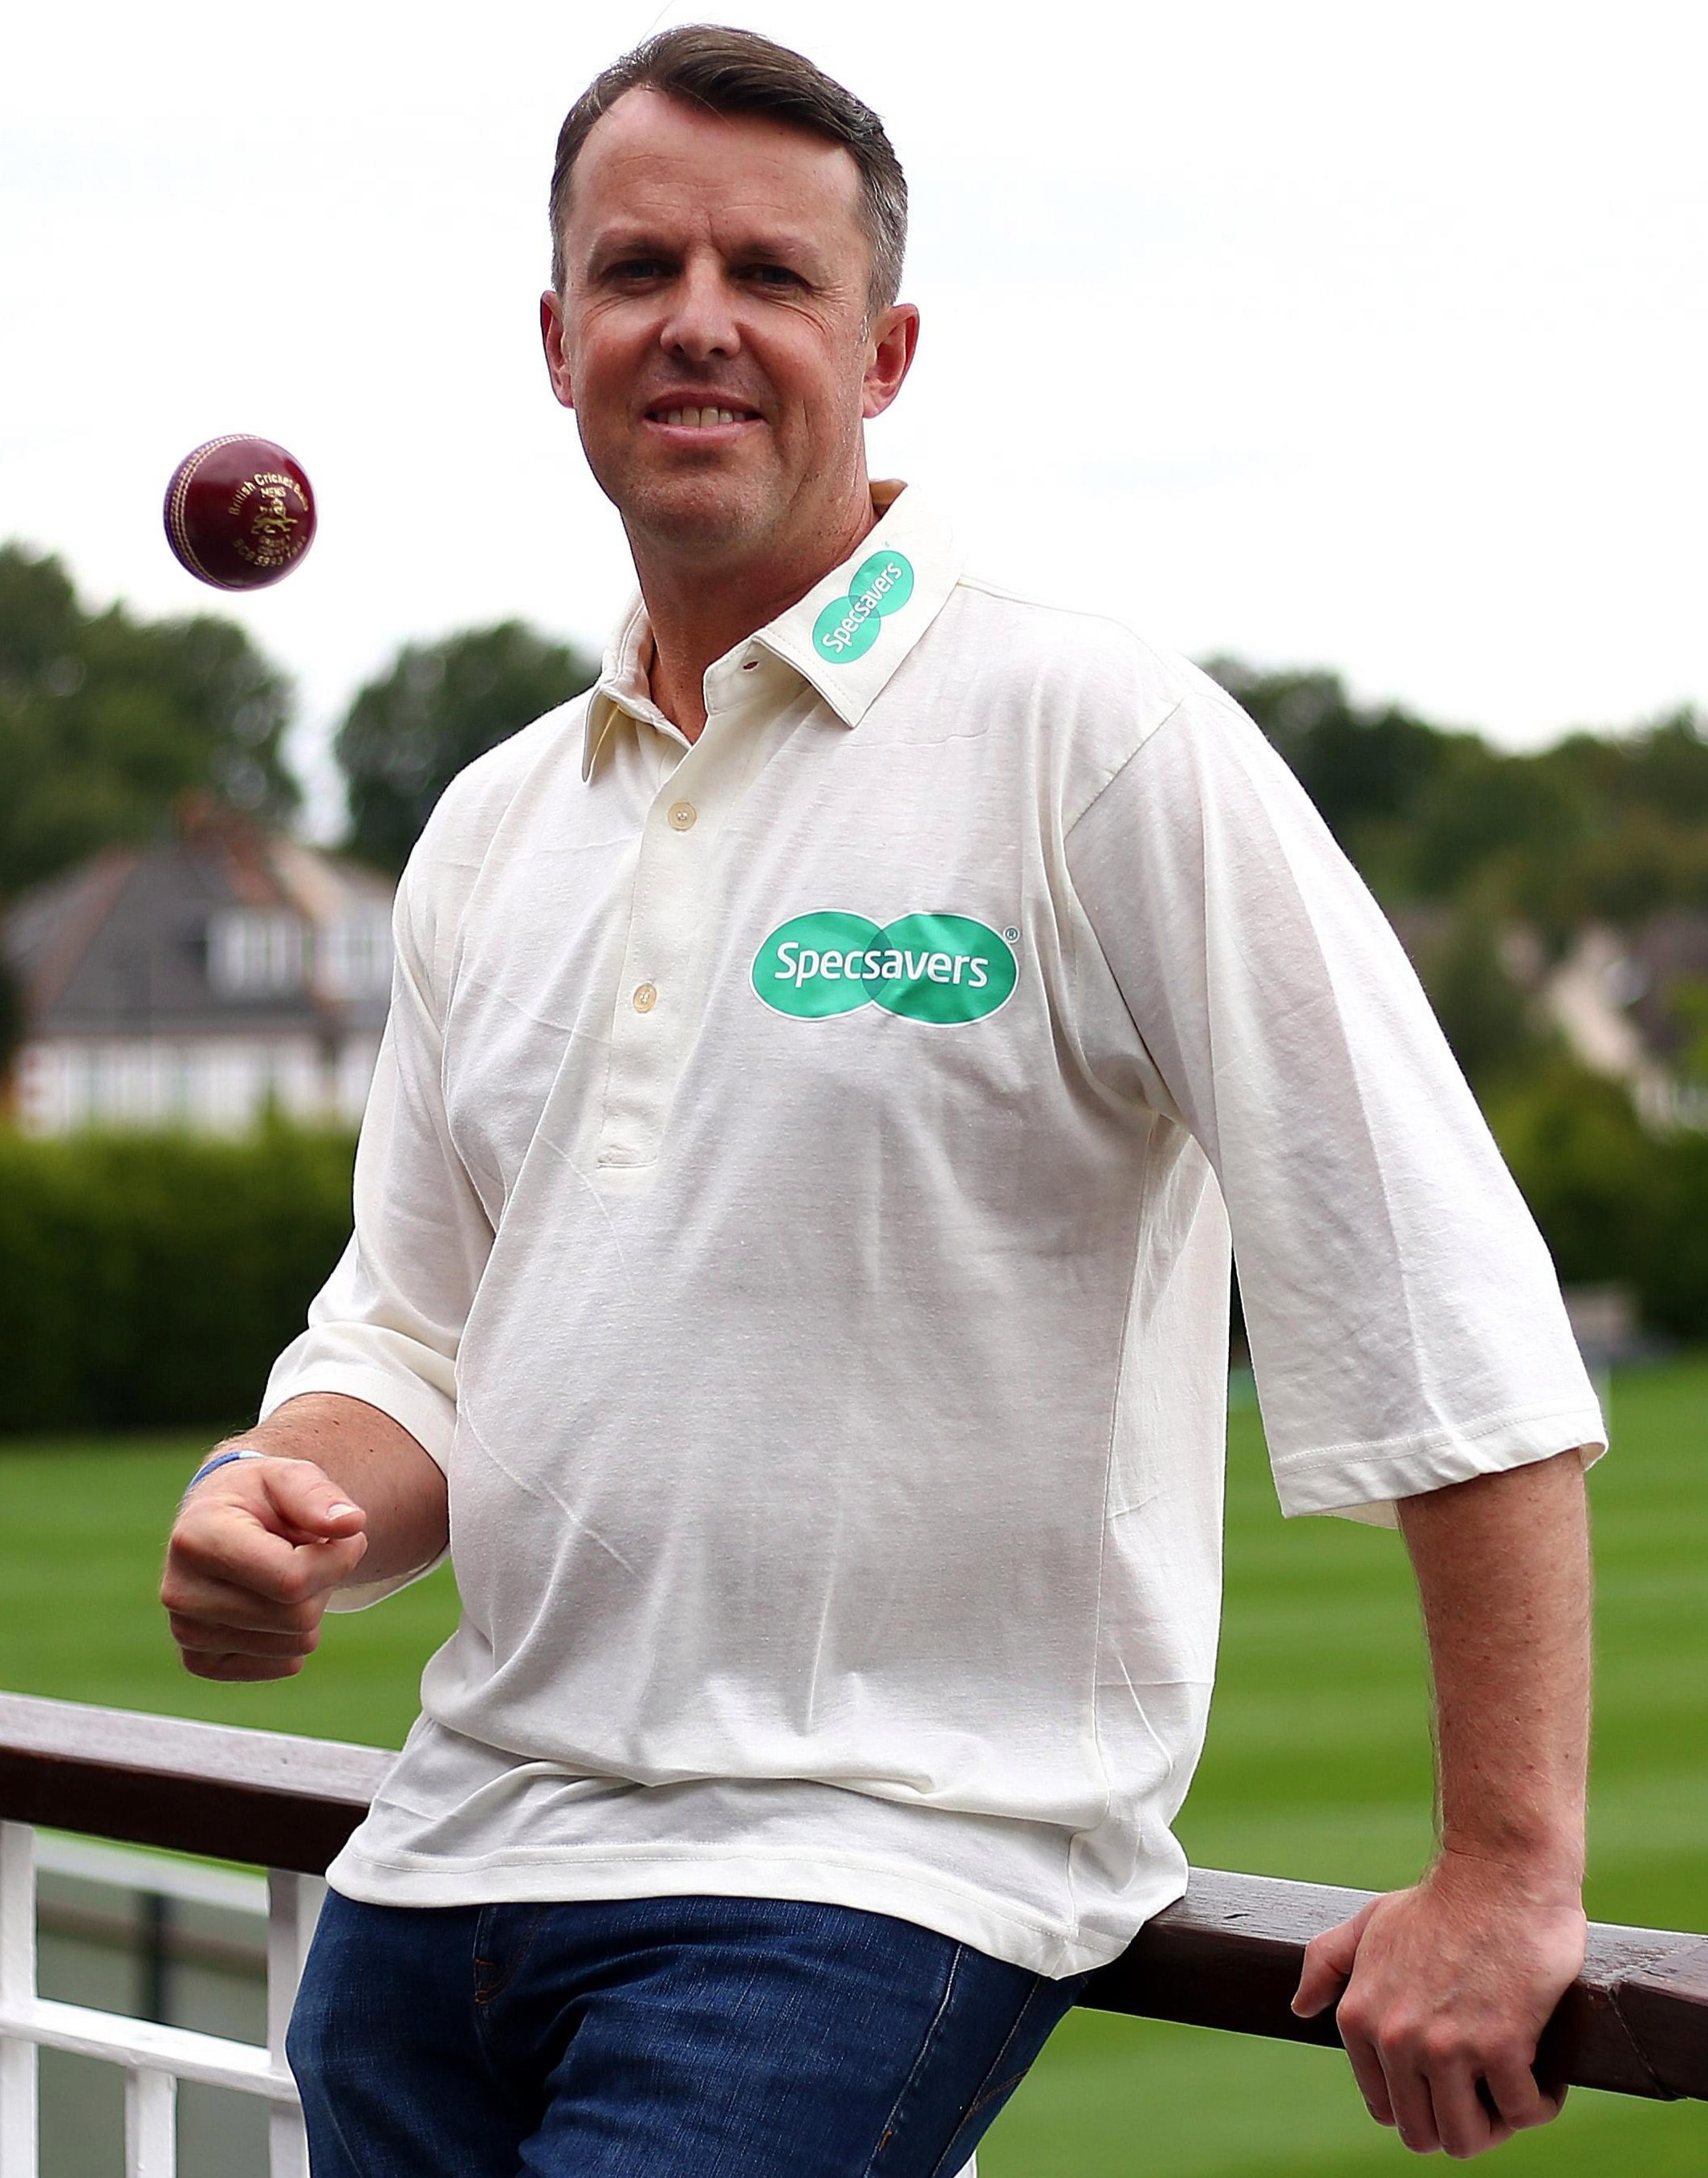 Graeme Swann has signed up for Strictly Come Dancing